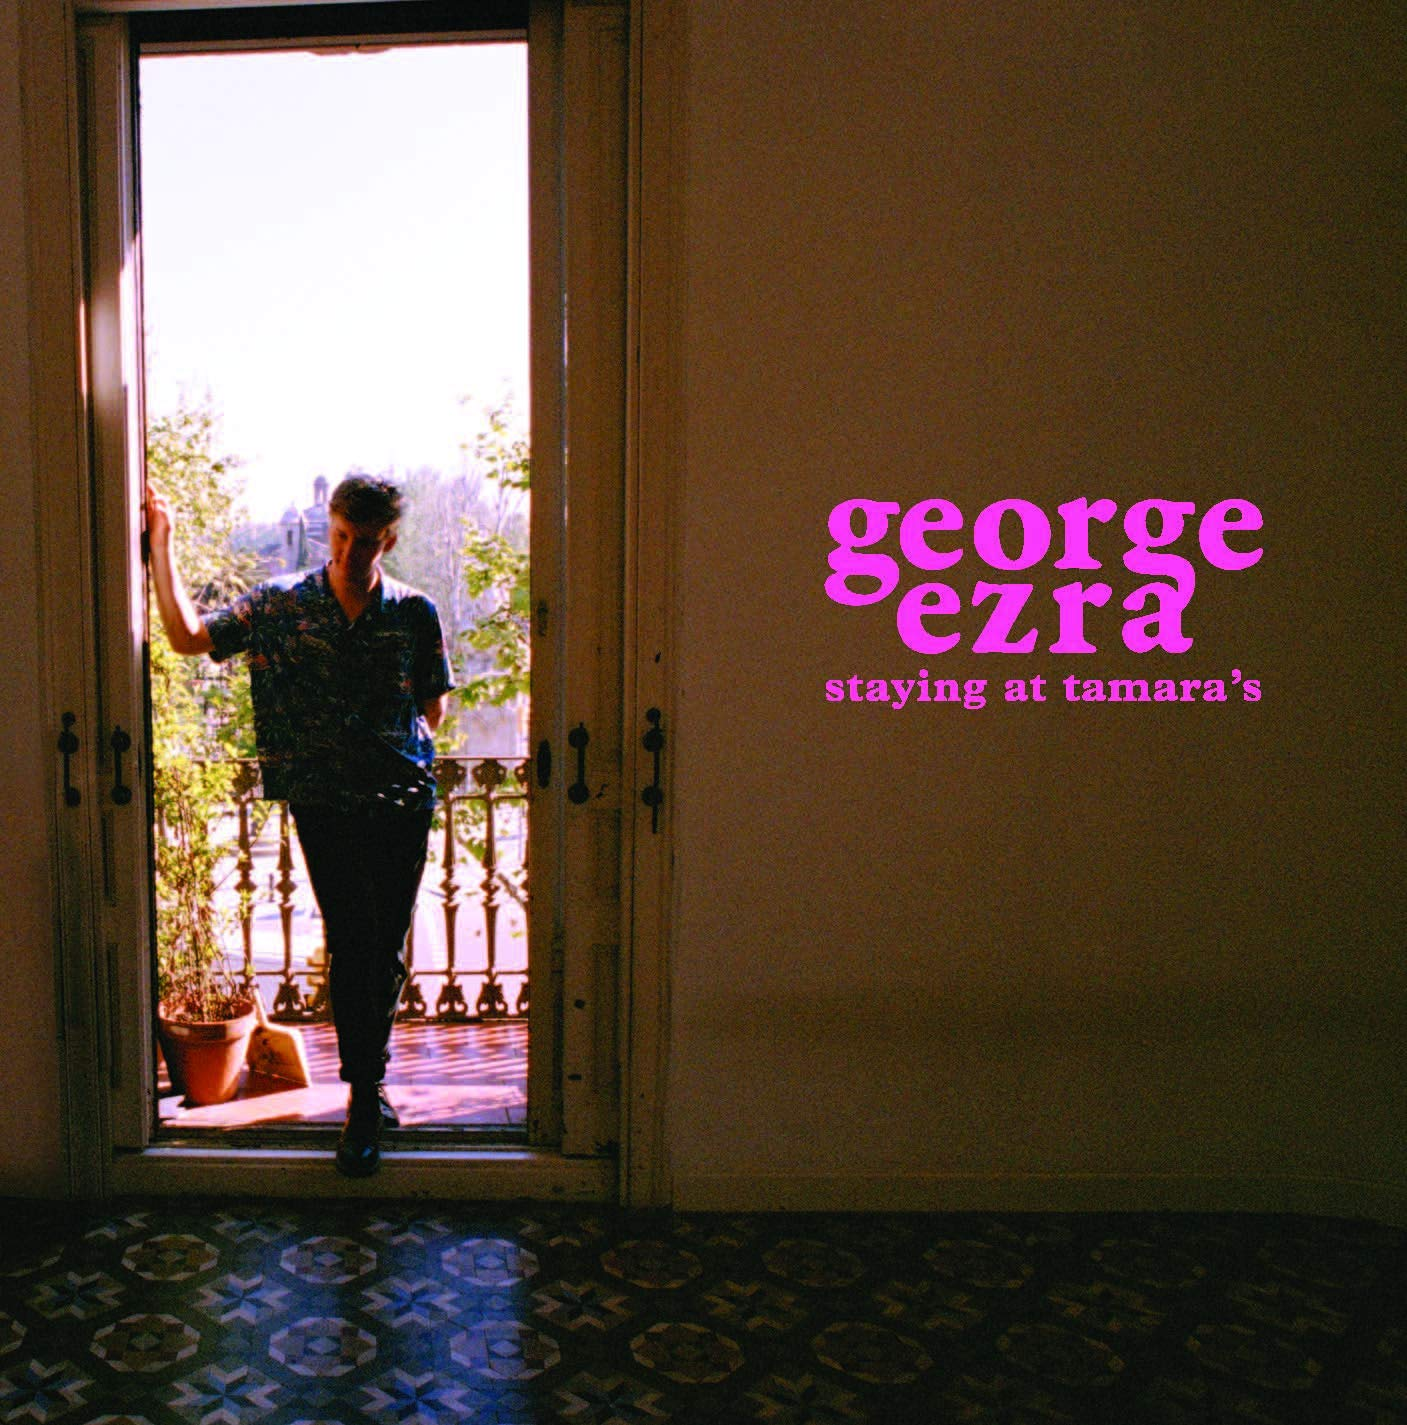 george ezra album free mp3 download